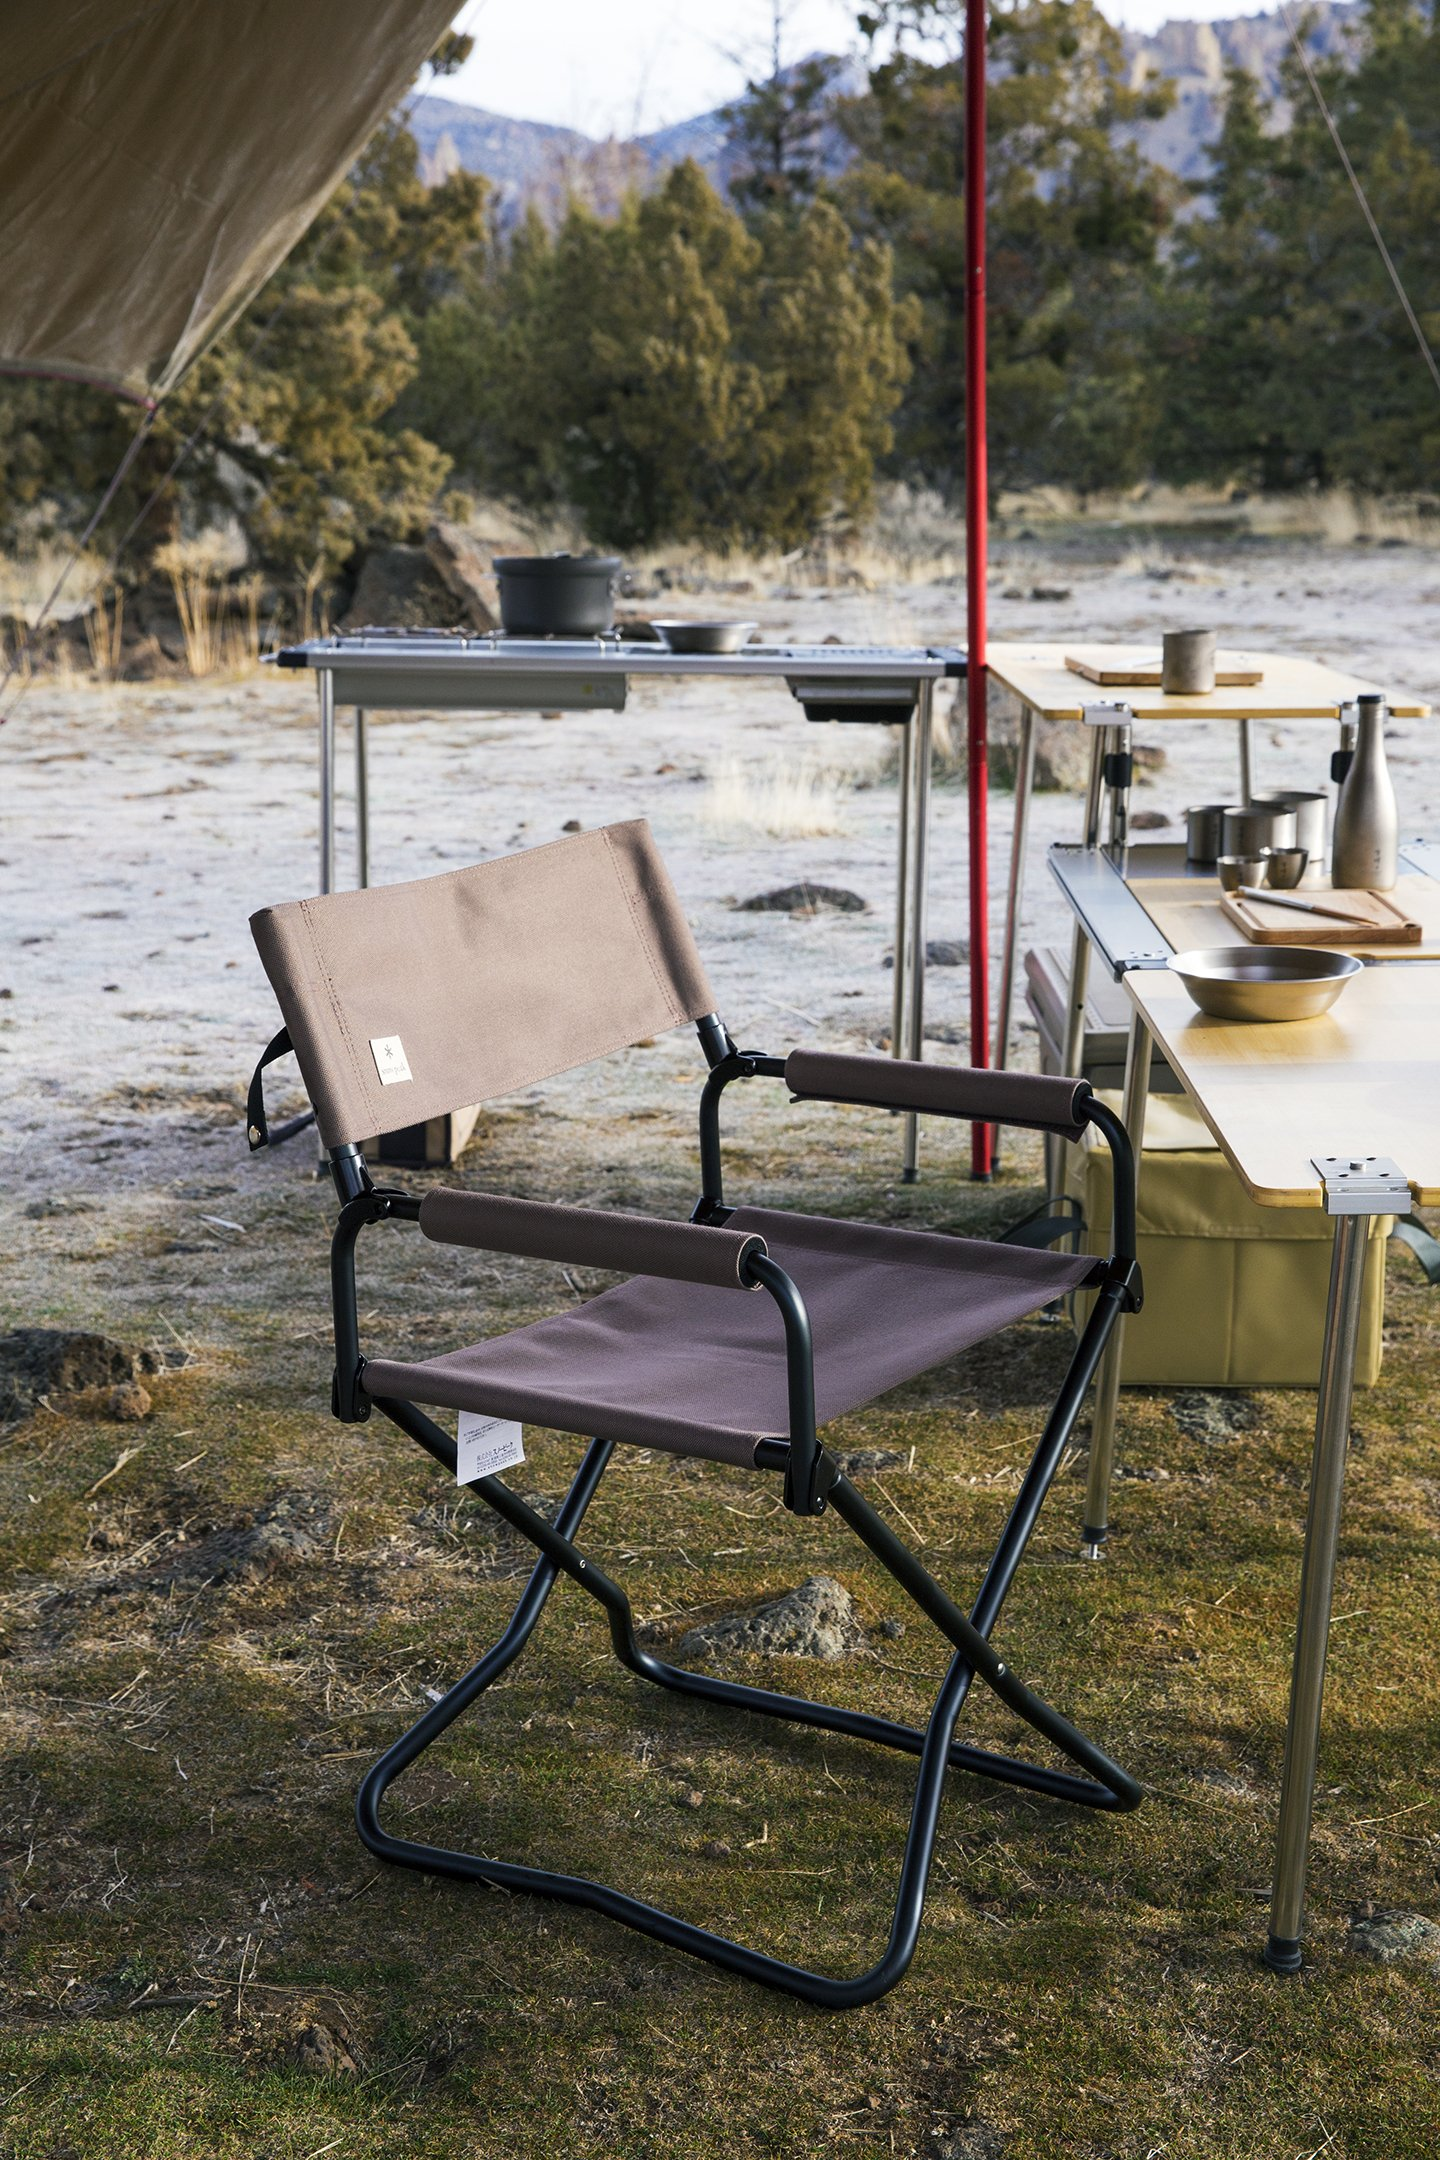 Campsite scene close up of chair